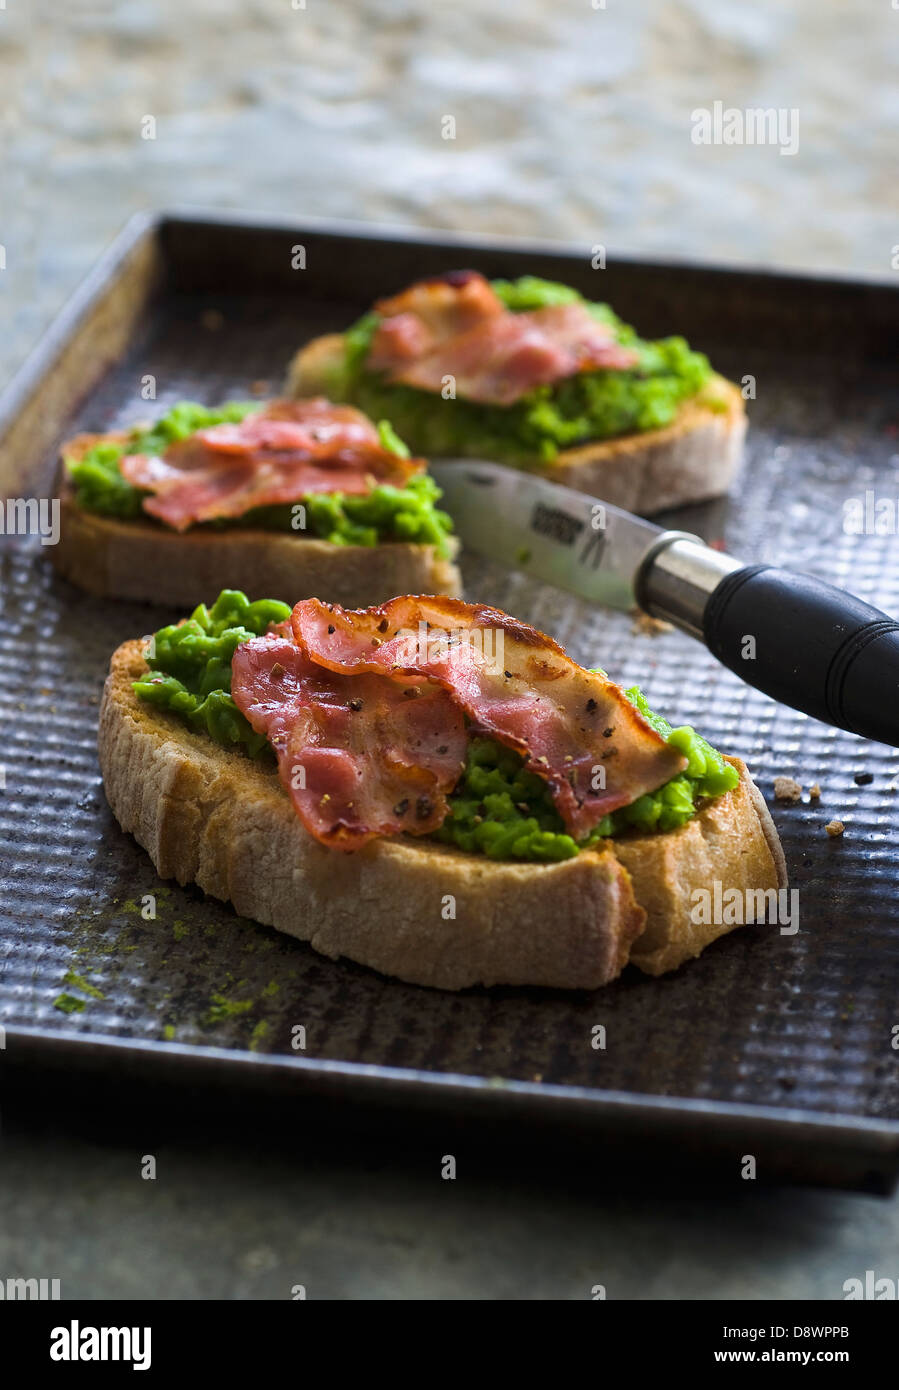 Pureed pea and bacon Bruschettas - Stock Image